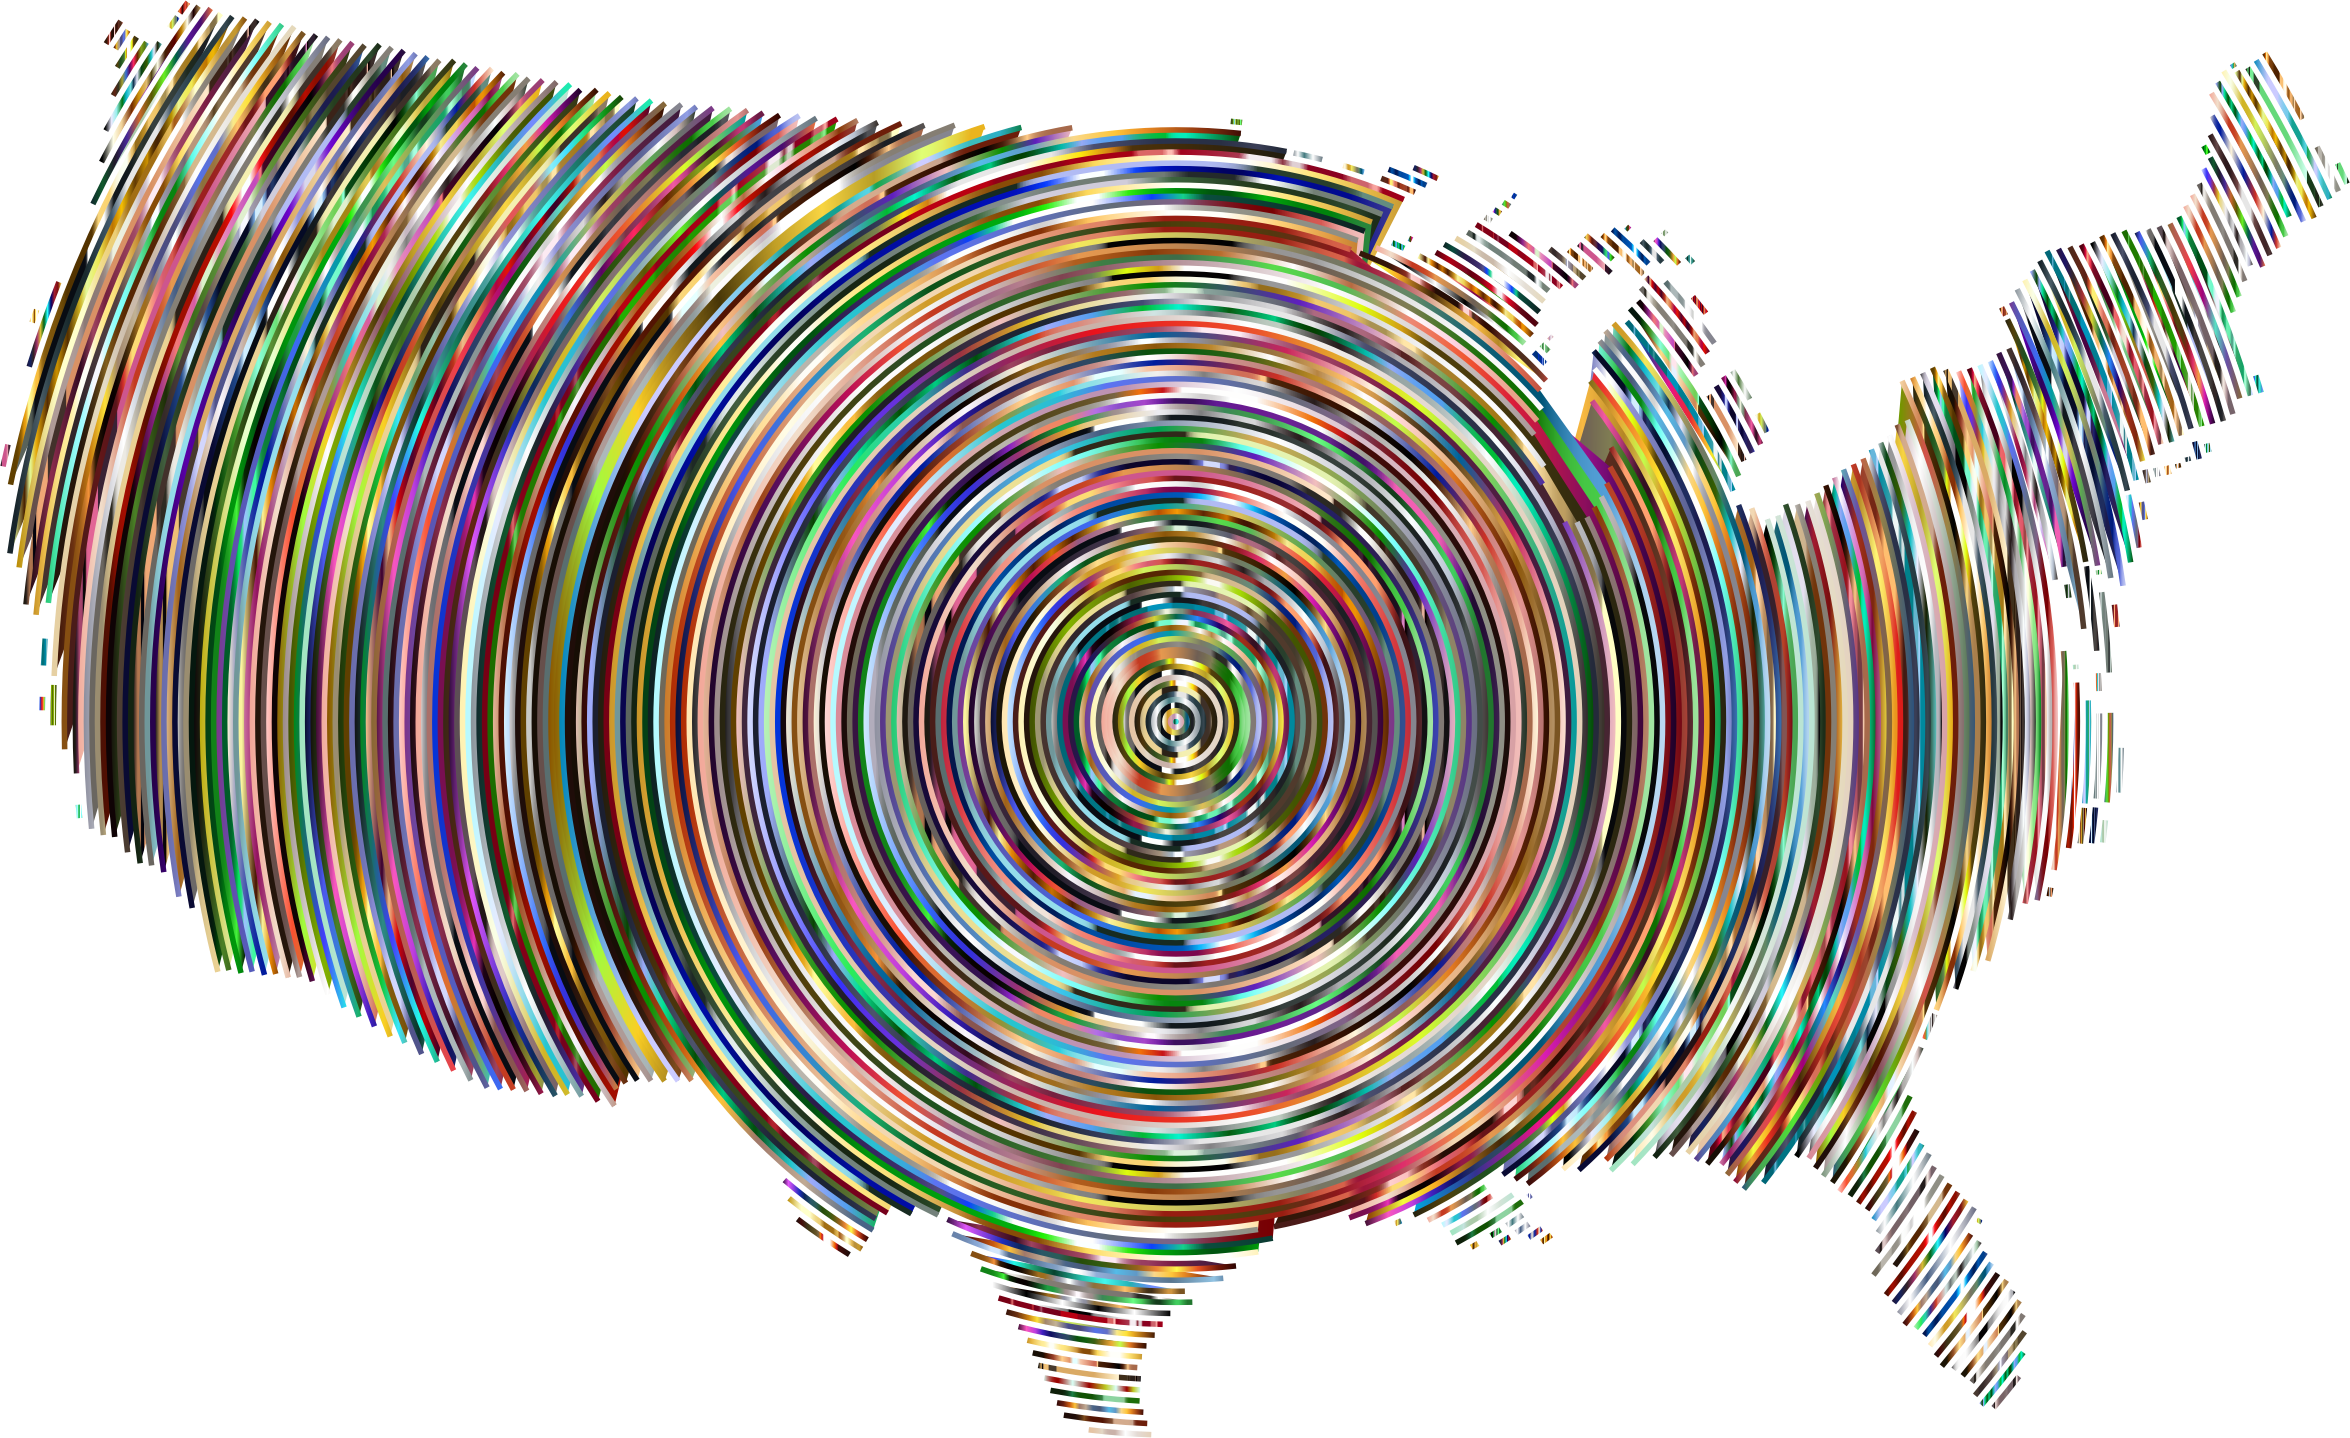 Prismatic United States Concentric Circles 5 by GDJ